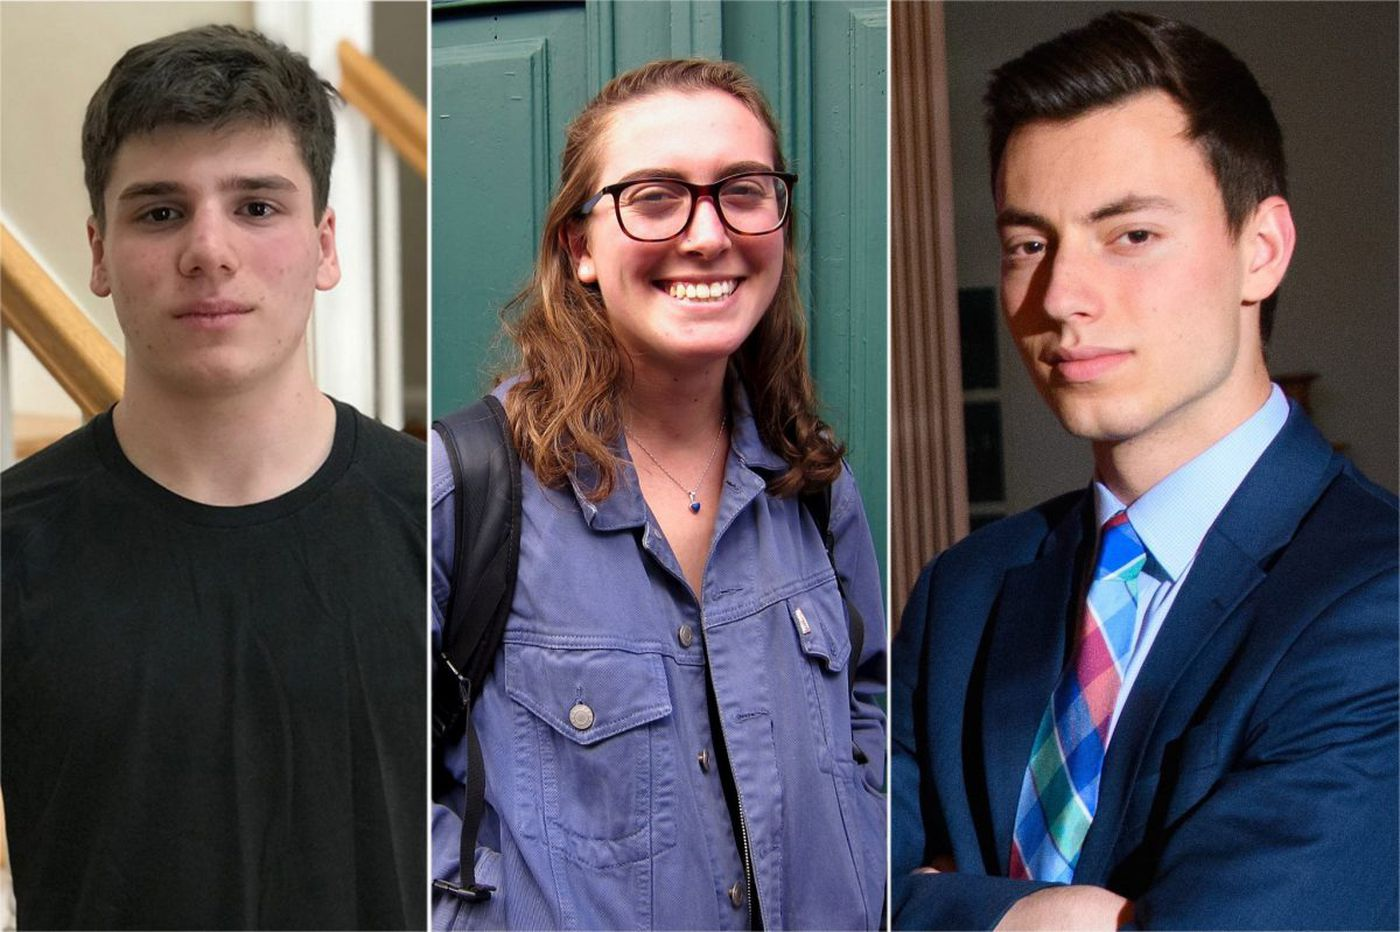 Meet the students helping organize Philadelphia's 'March for Our Lives'